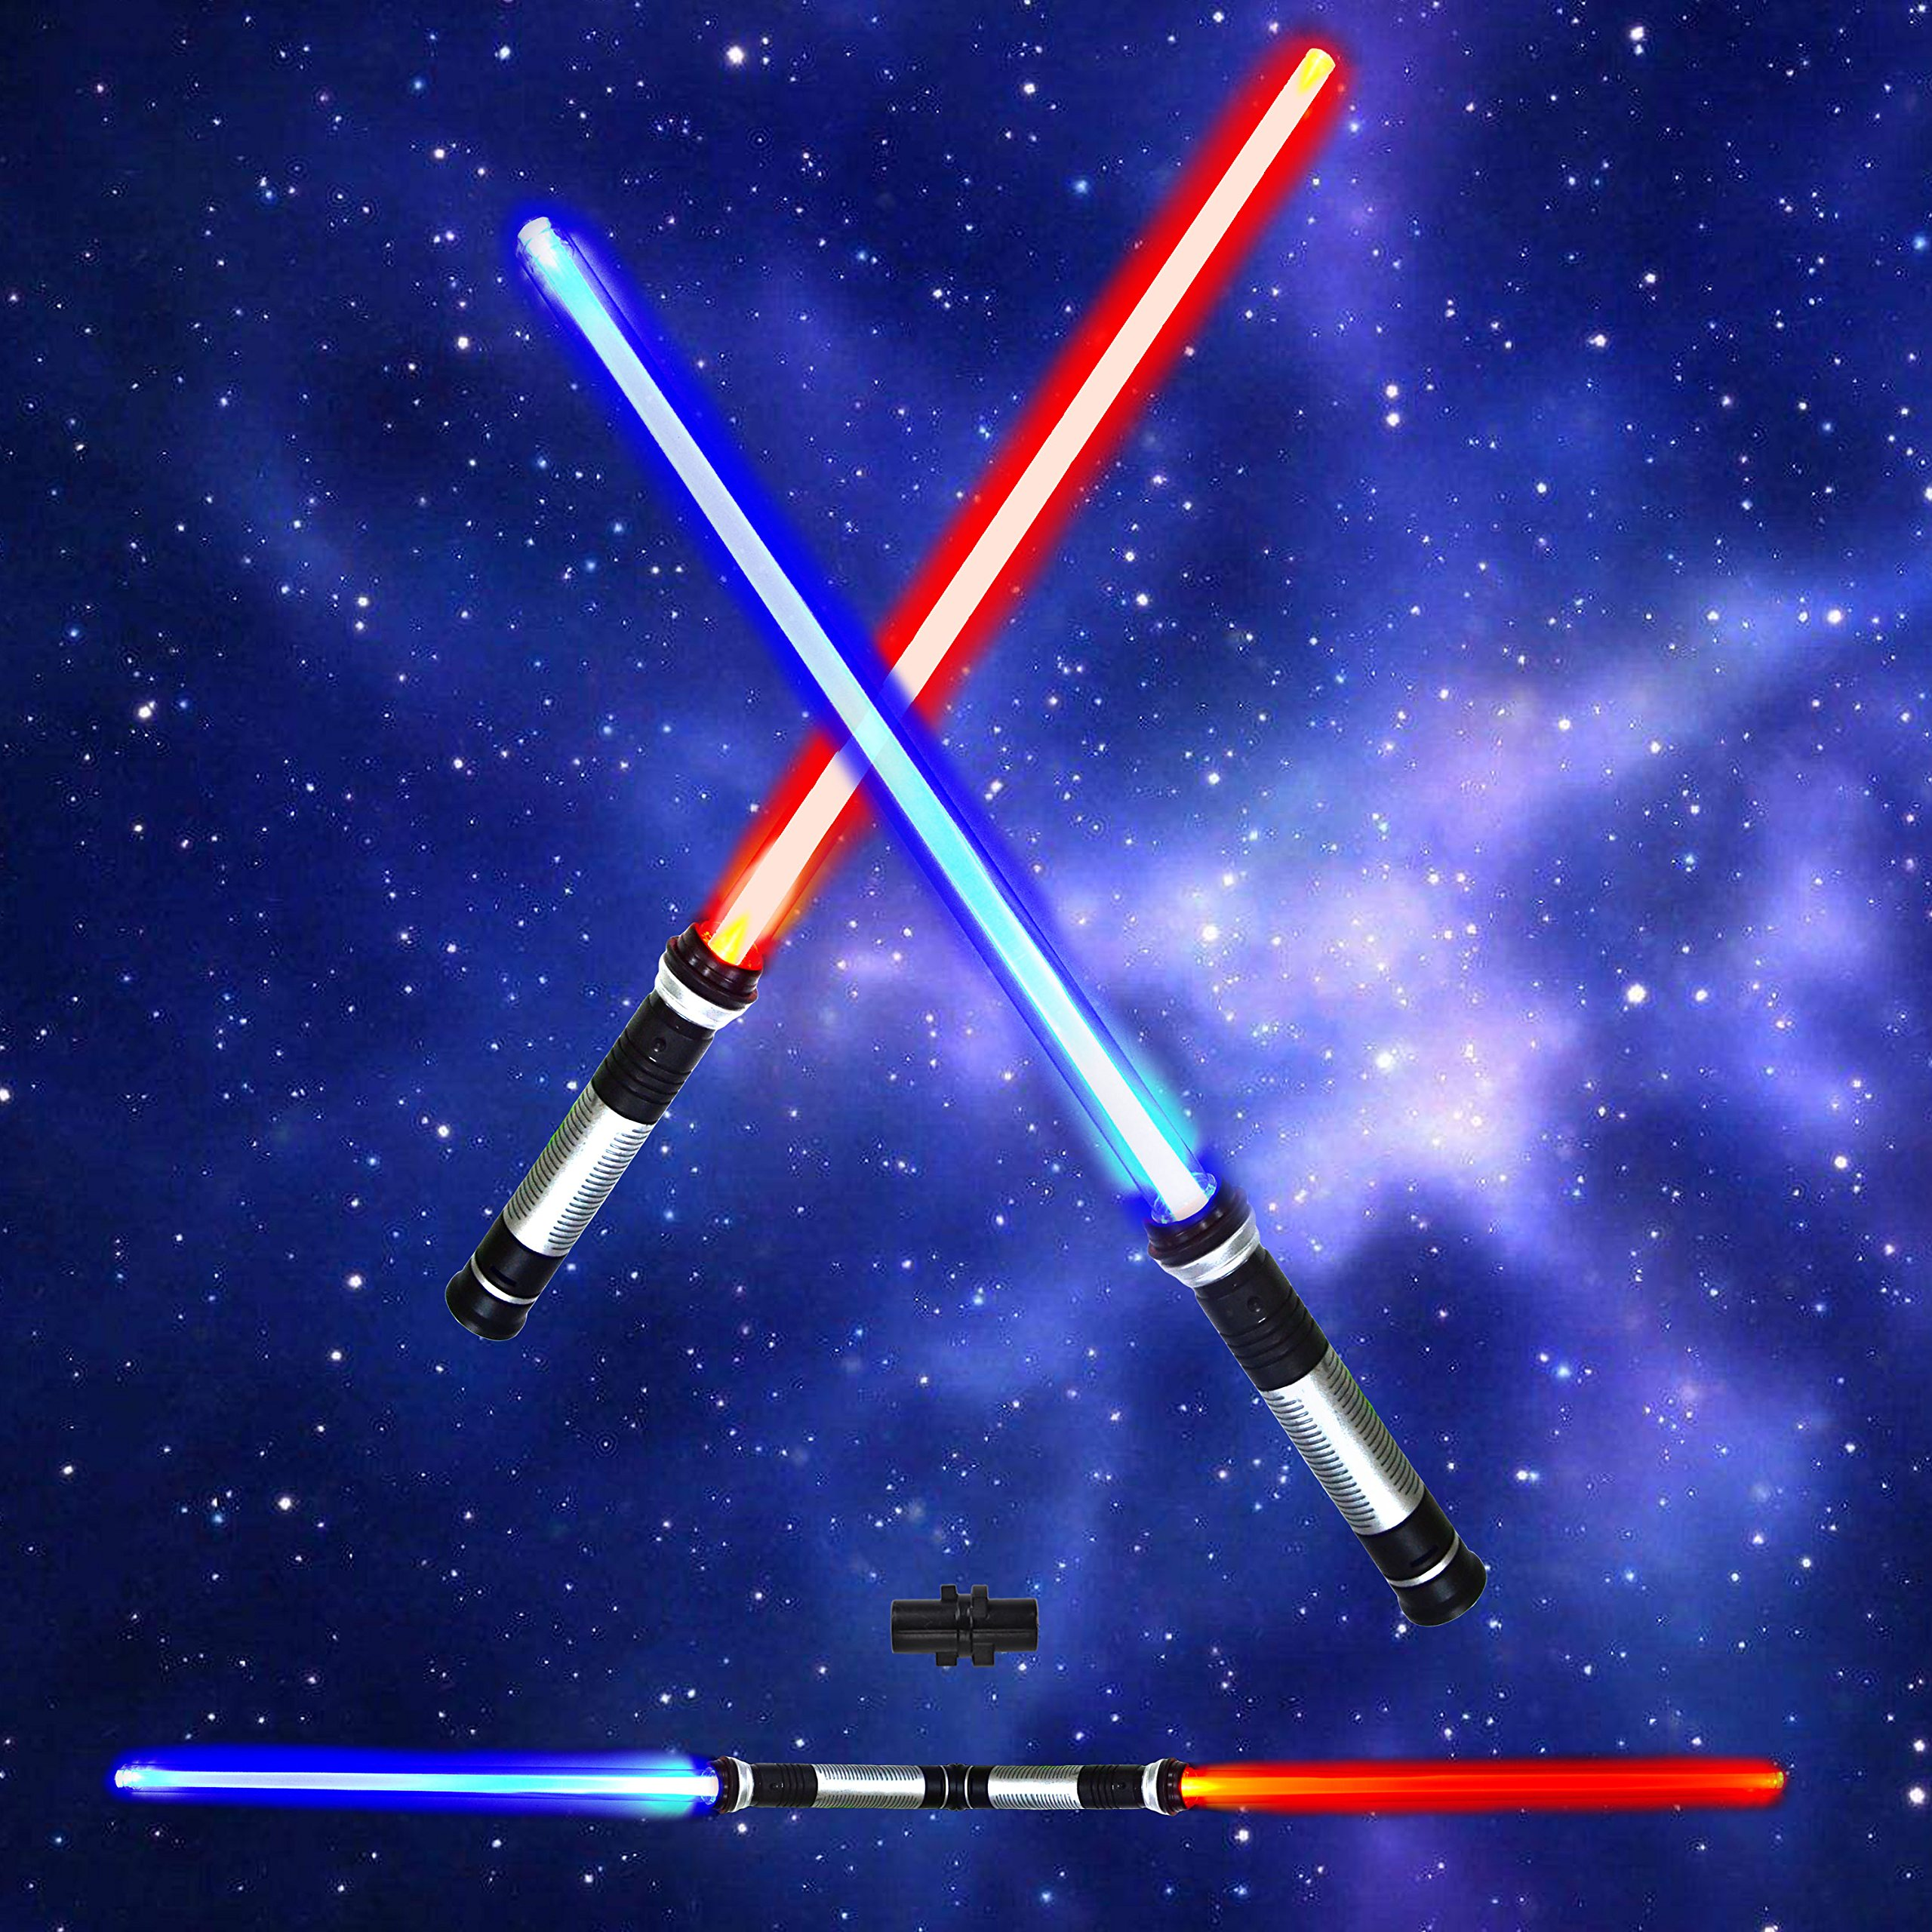 Light Saber 2-in-1 LED (6 Colors) Light Up FX Laser Dual Swords Set with Sound (Motion Sensitive) for Galaxy War Fighters and Warriors by Spooktacular Creations